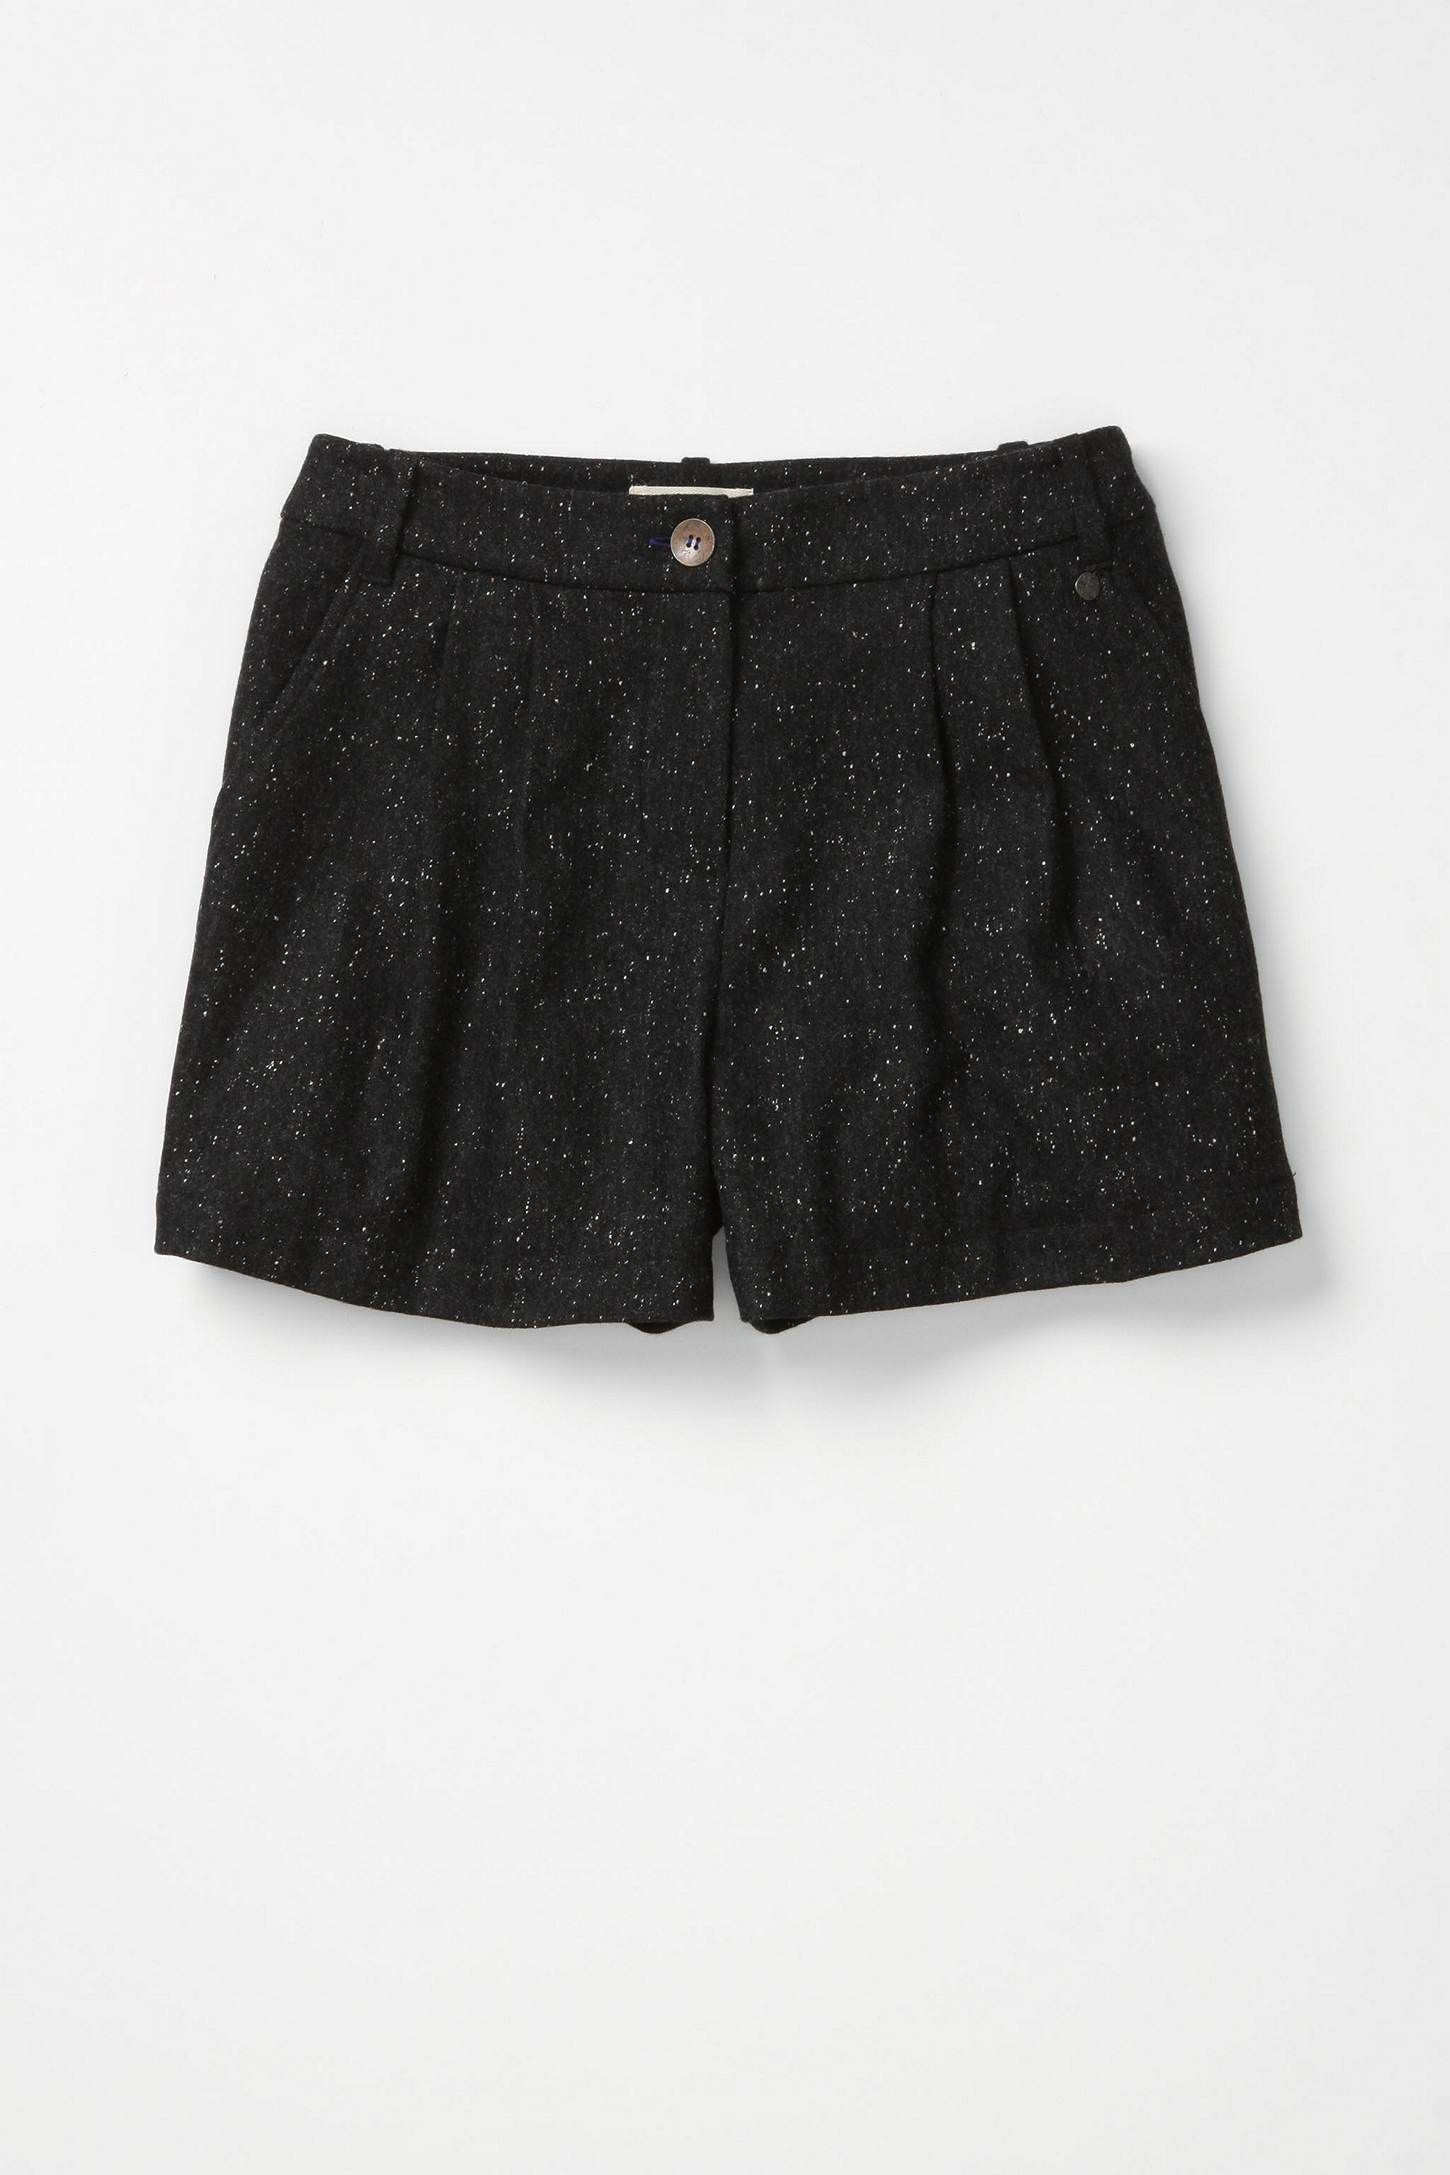 Really cute winter shorts on sale at Anthropologie!